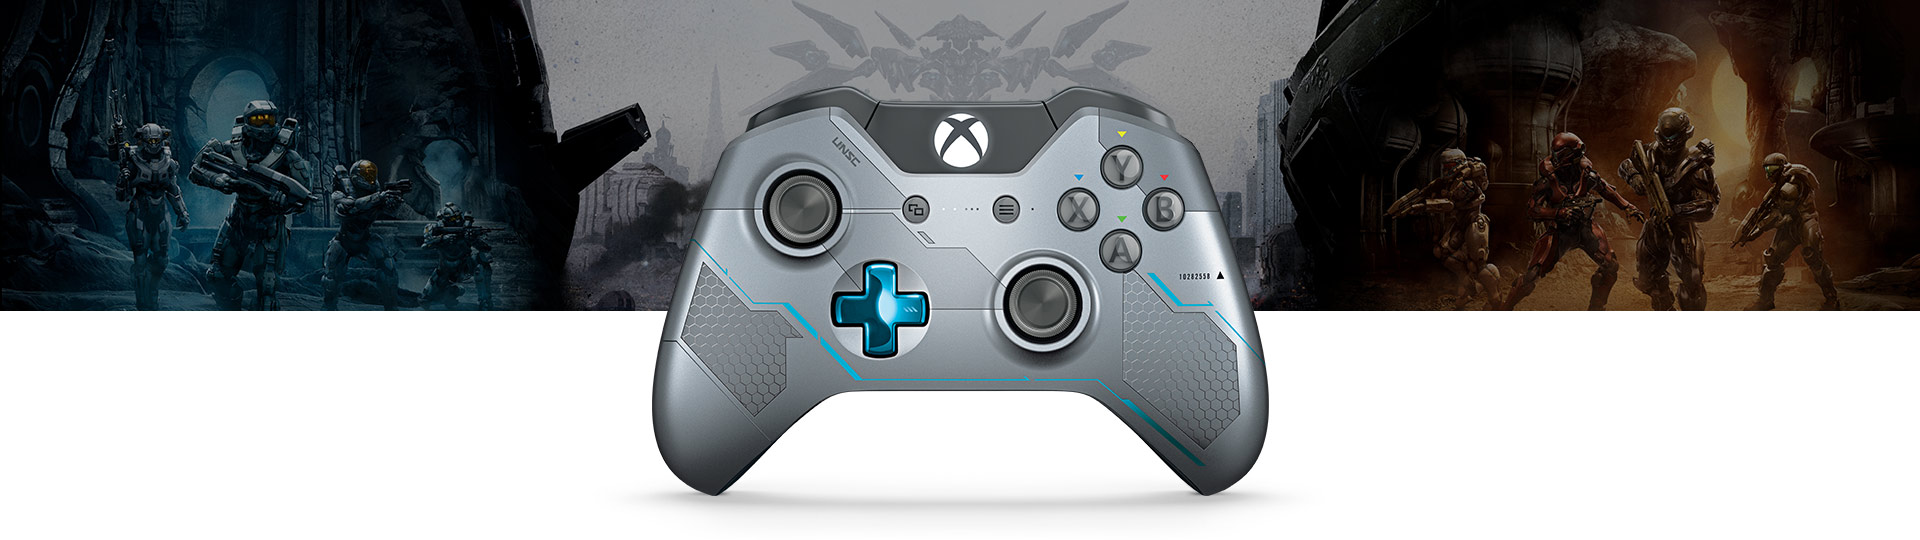 Xbox One Wireless Halo 5 Guardians Controller